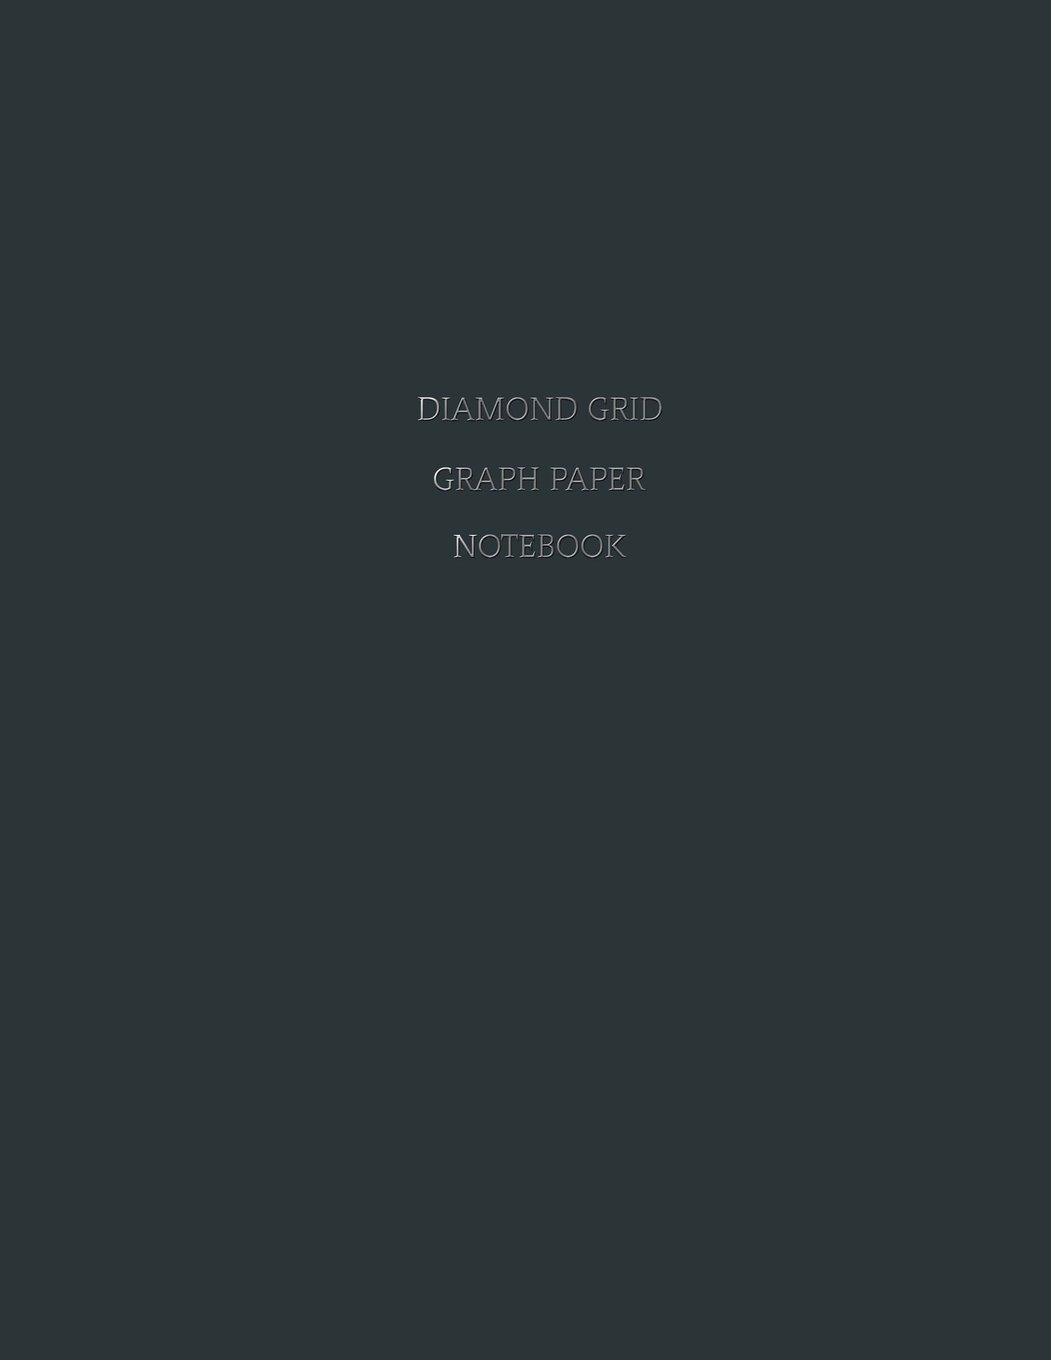 Download Diamond Grid Graph Paper Notebook: Diagonally Aligned 1 cm x 1 cm (.39 inch) Diamonds on 8.5 x 11 Inch Diamond Grid Paper (22 x 28 cm) for Diamond ... Art Design Diamond Game Map Grid Game Mat PDF